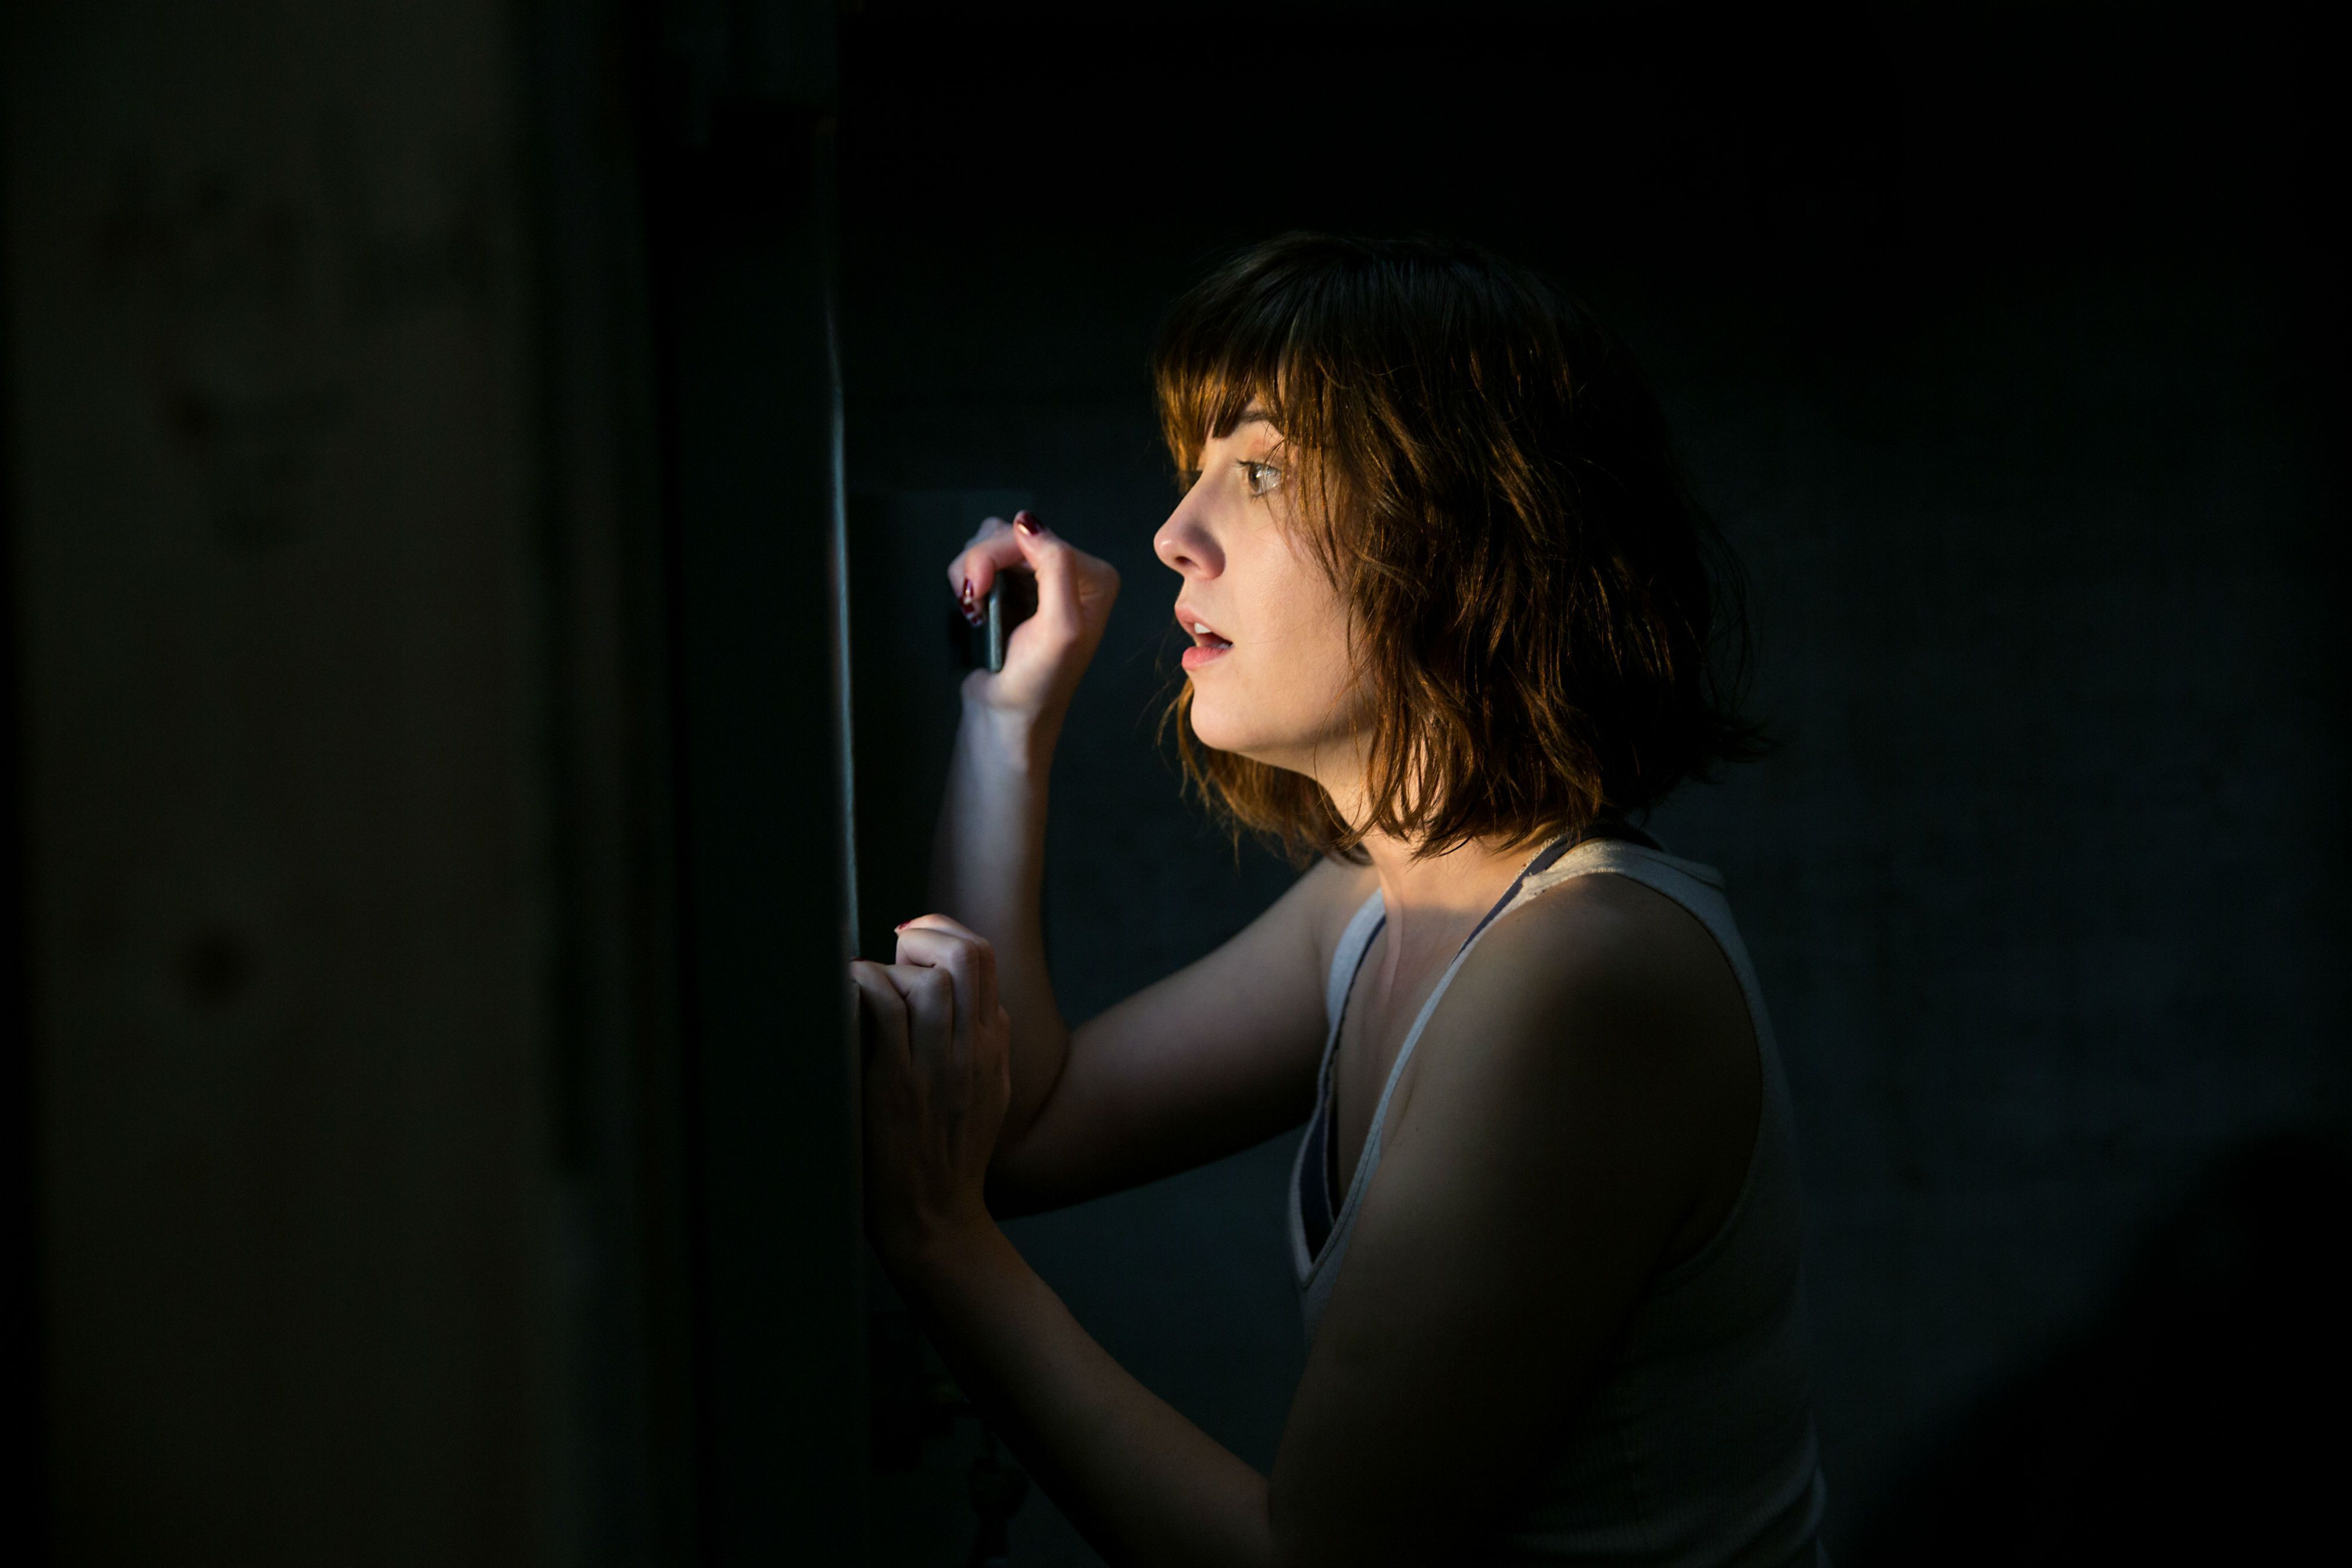 10 Cloverfield Lane High Quality Wallpapers